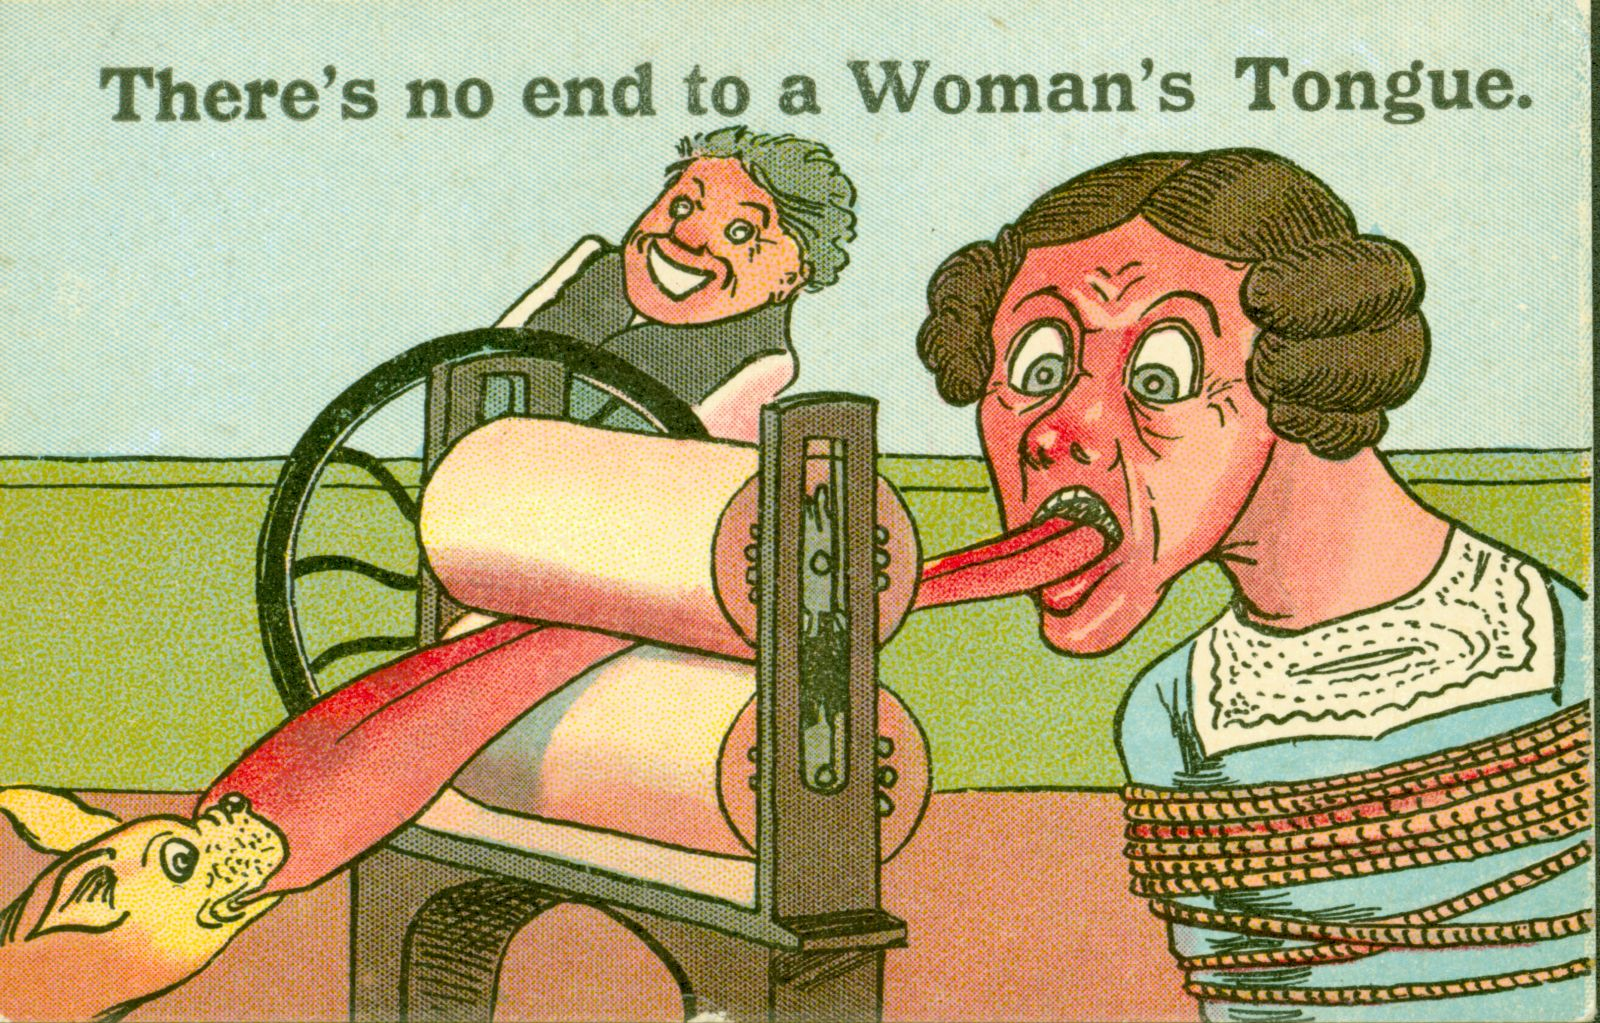 Postcard showing a woman's tongue going through a mangle and a dog pulling on the end of it. The caption reads 'There's no end to a Woman's Tongue'